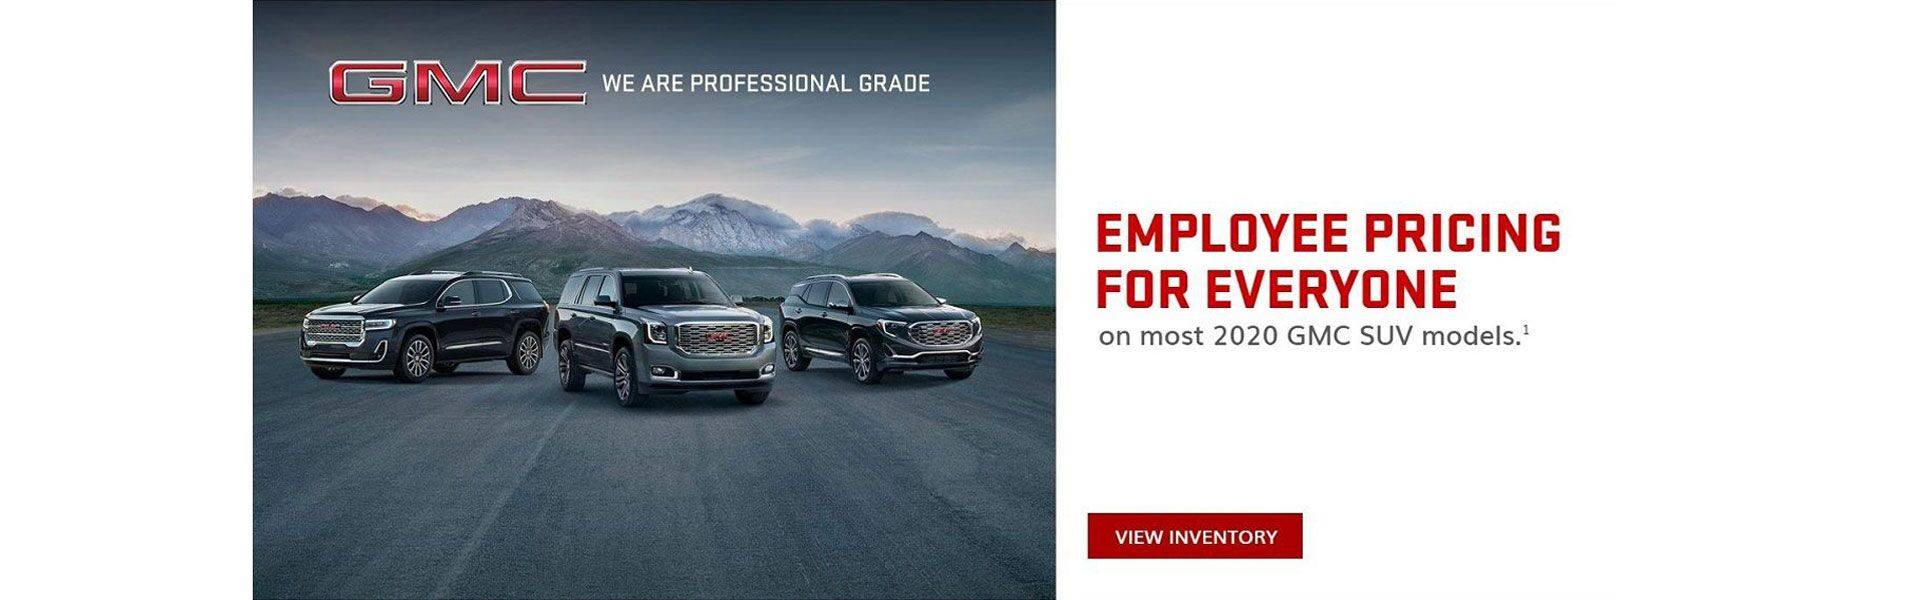 GMC Employee Pricing Carbondale